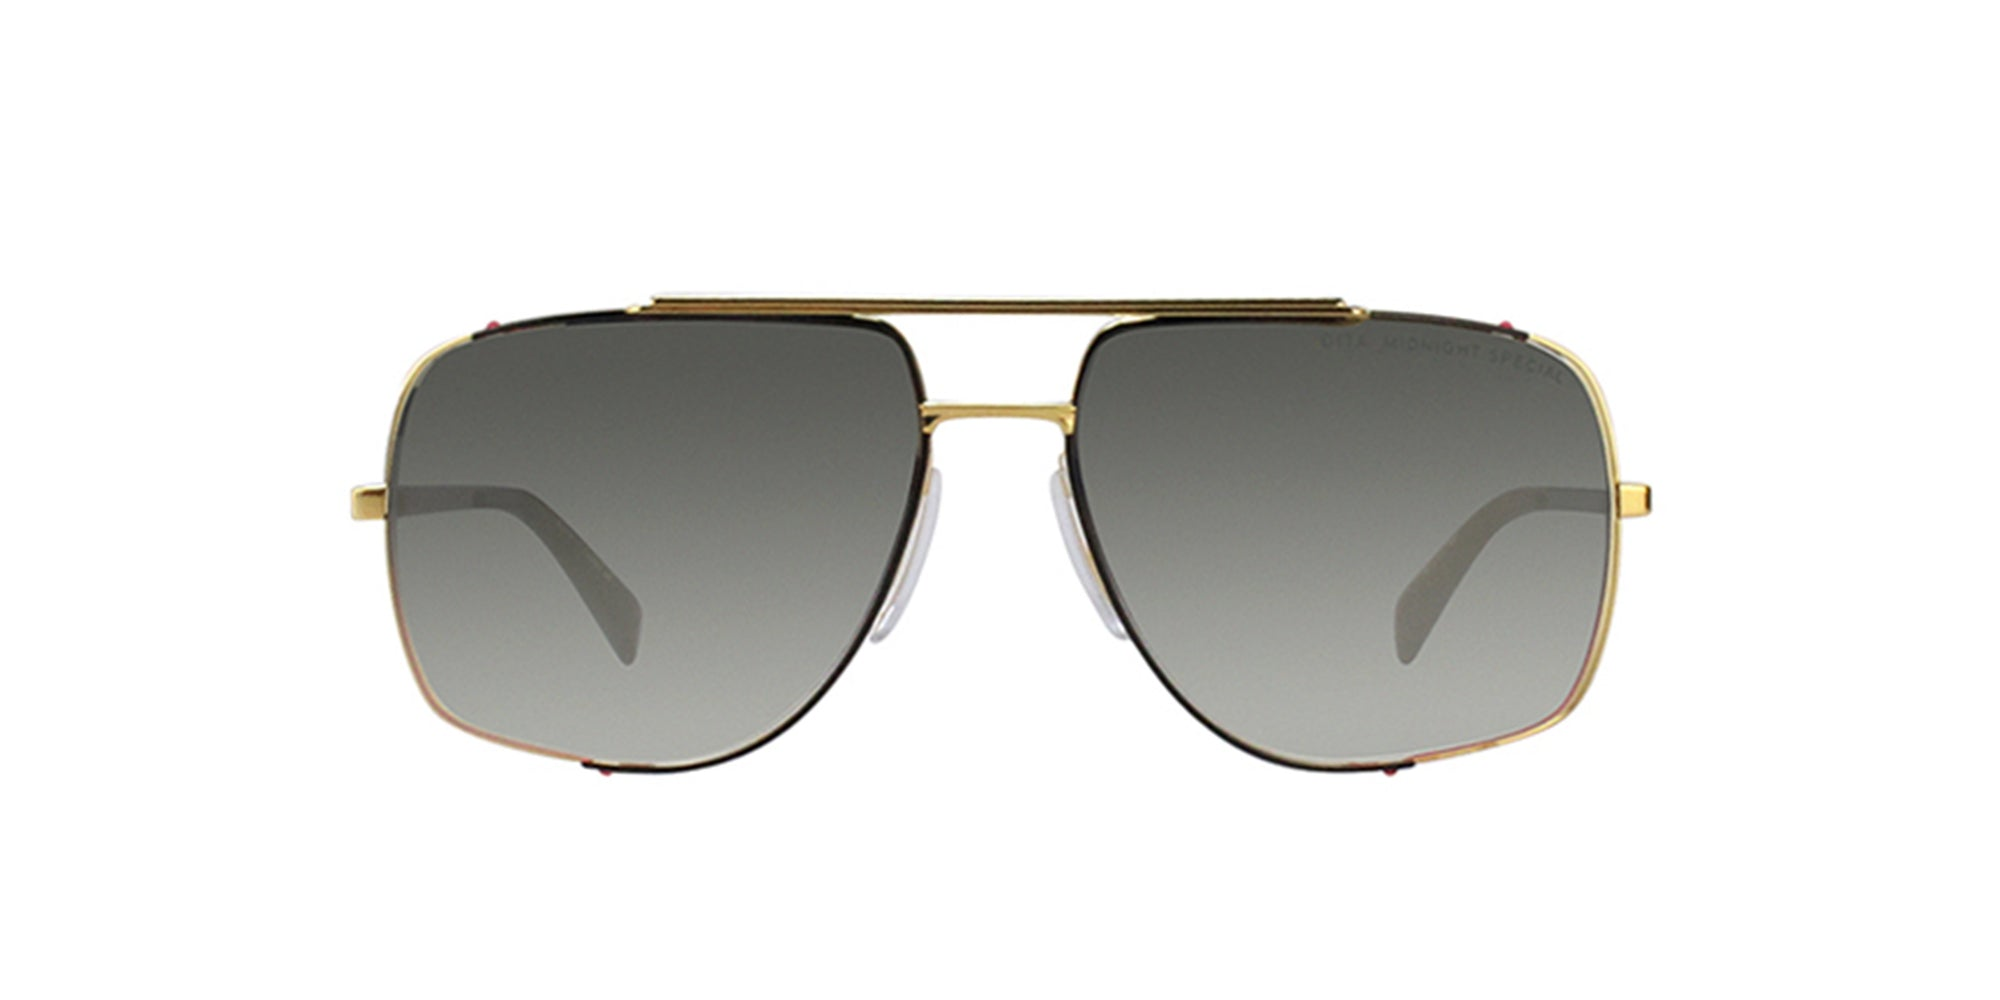 Dita - Midnight Gold Rectangular Men Sunglasses - 60mm-Sunglasses-Designer Eyes